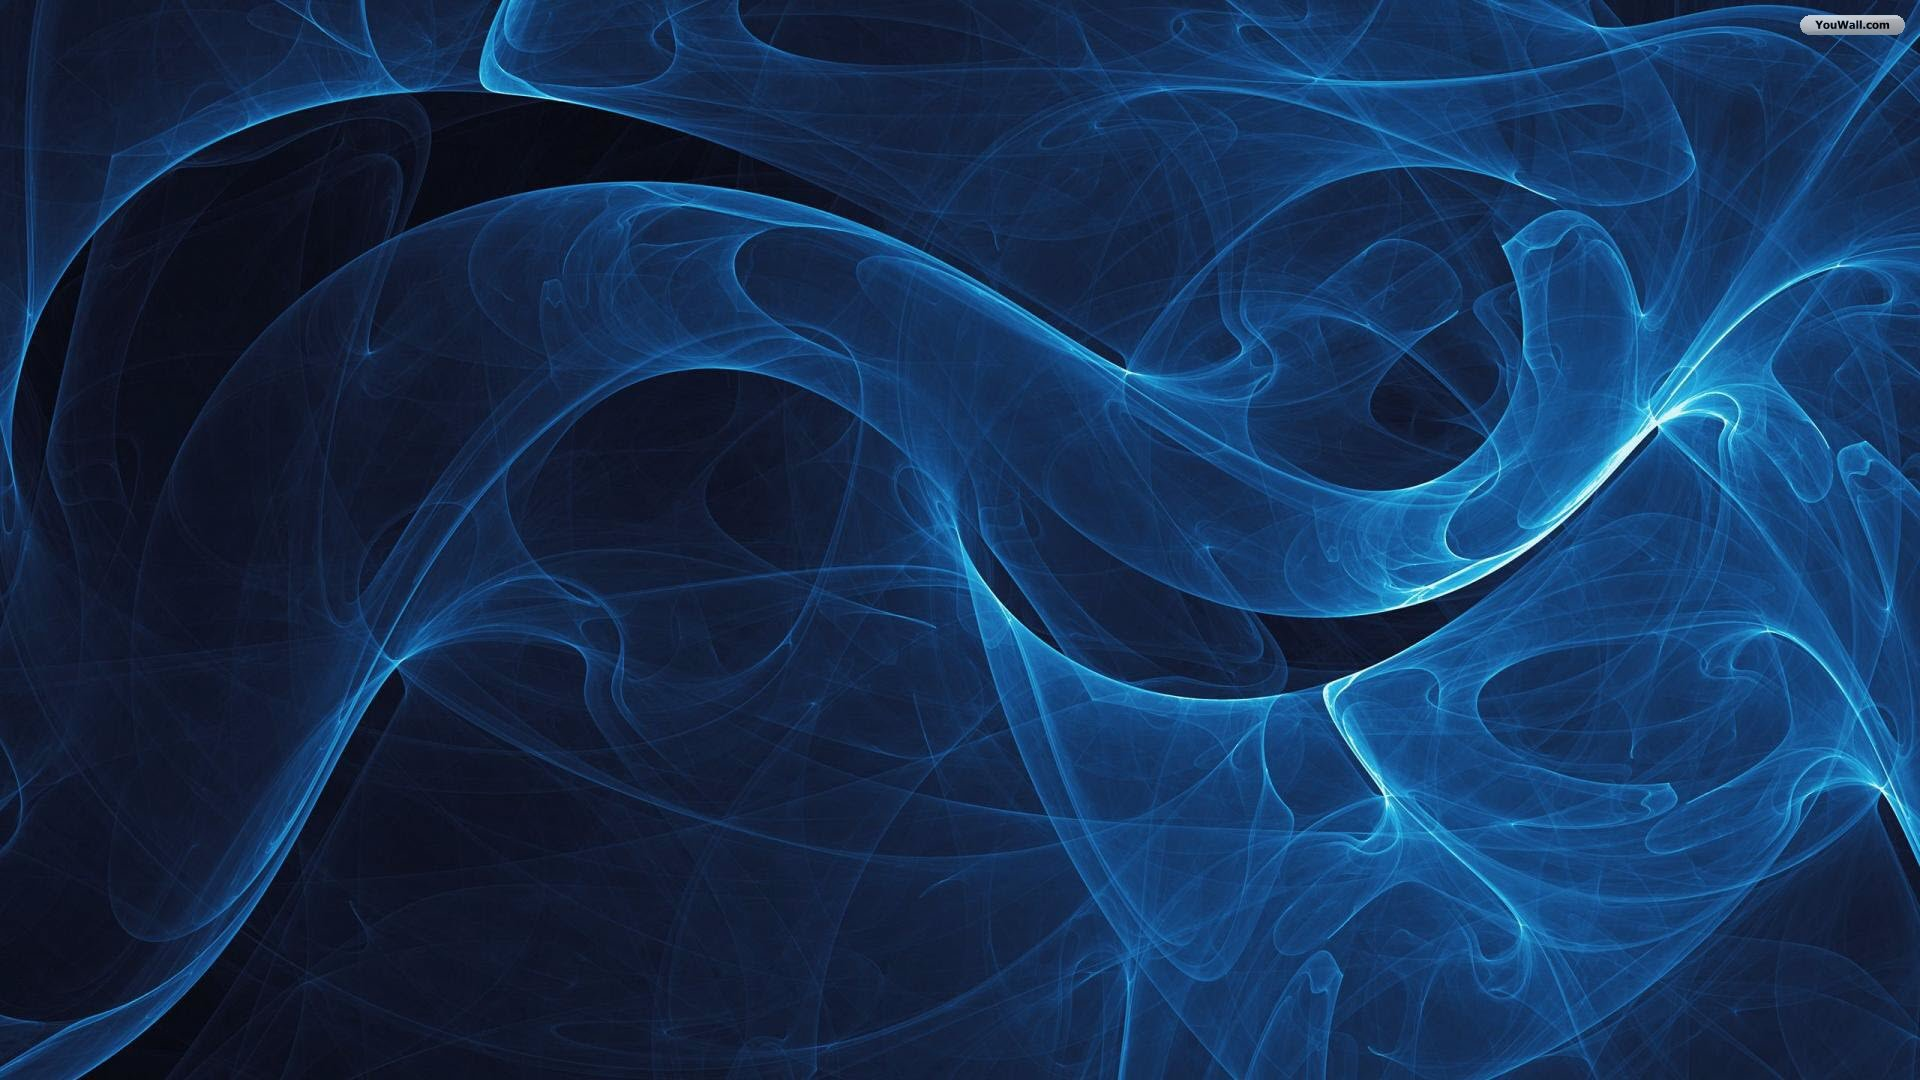 Blue And Black Abstract Lines 1 Wallpaper Background Hd 19201080 1920x1080